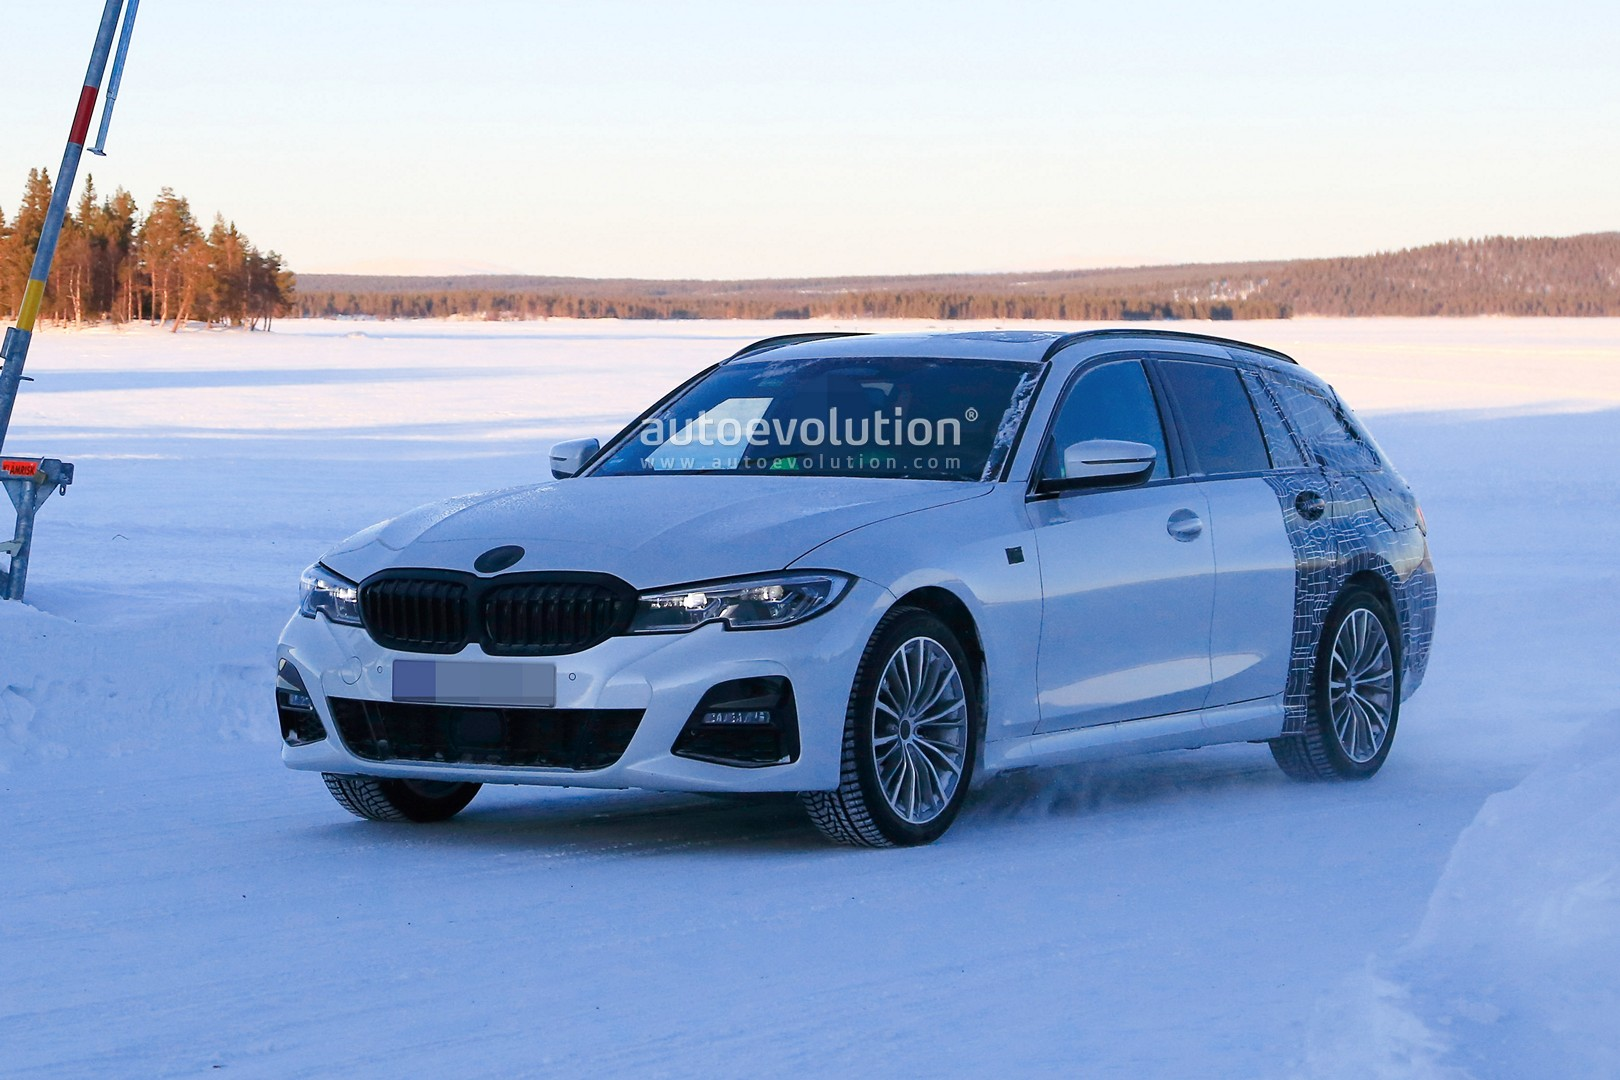 2020 Bmw 3 Series Touring Spied Winter Testing With M Sport Package